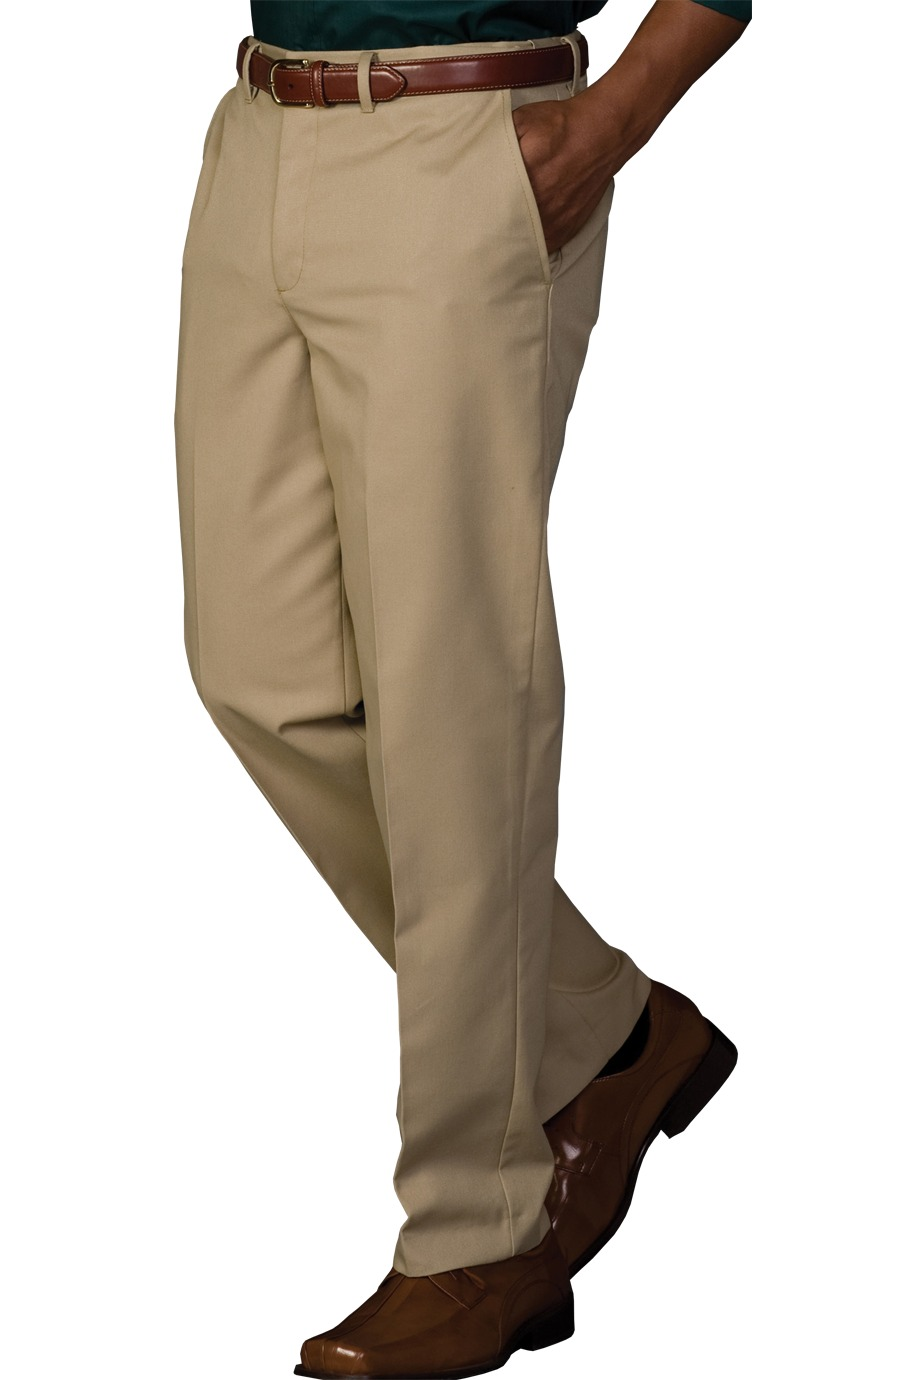 Edwards Garment 2578 - Men's Easy Fit Chino Flat Front Pant